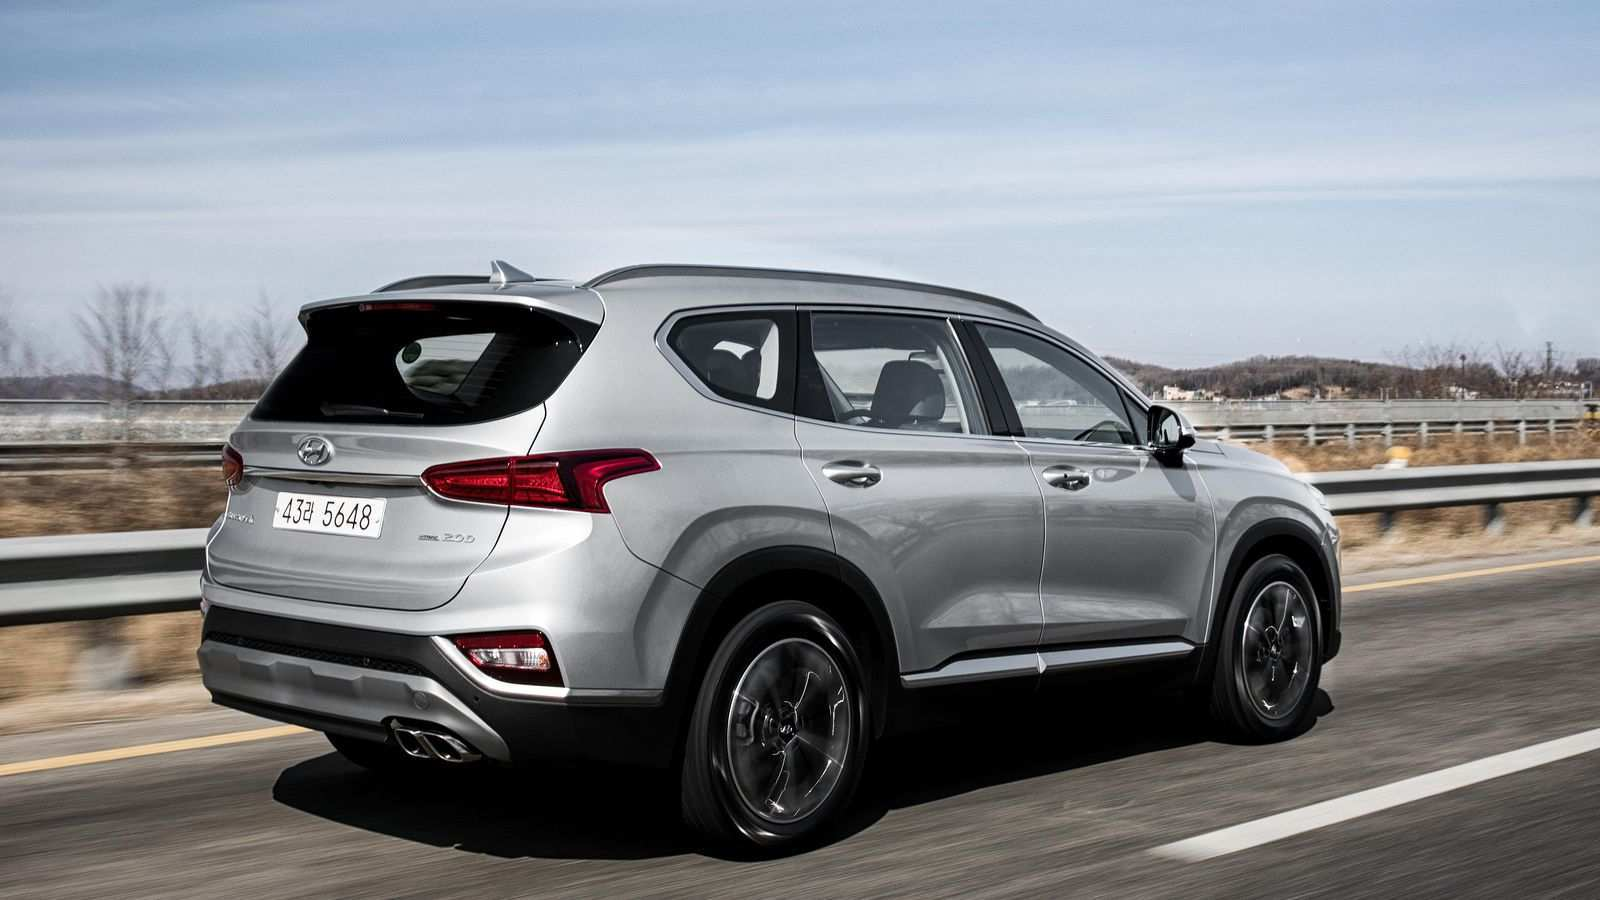 88 All New 2019 Hyundai Santa Fe Launch Price and Release date